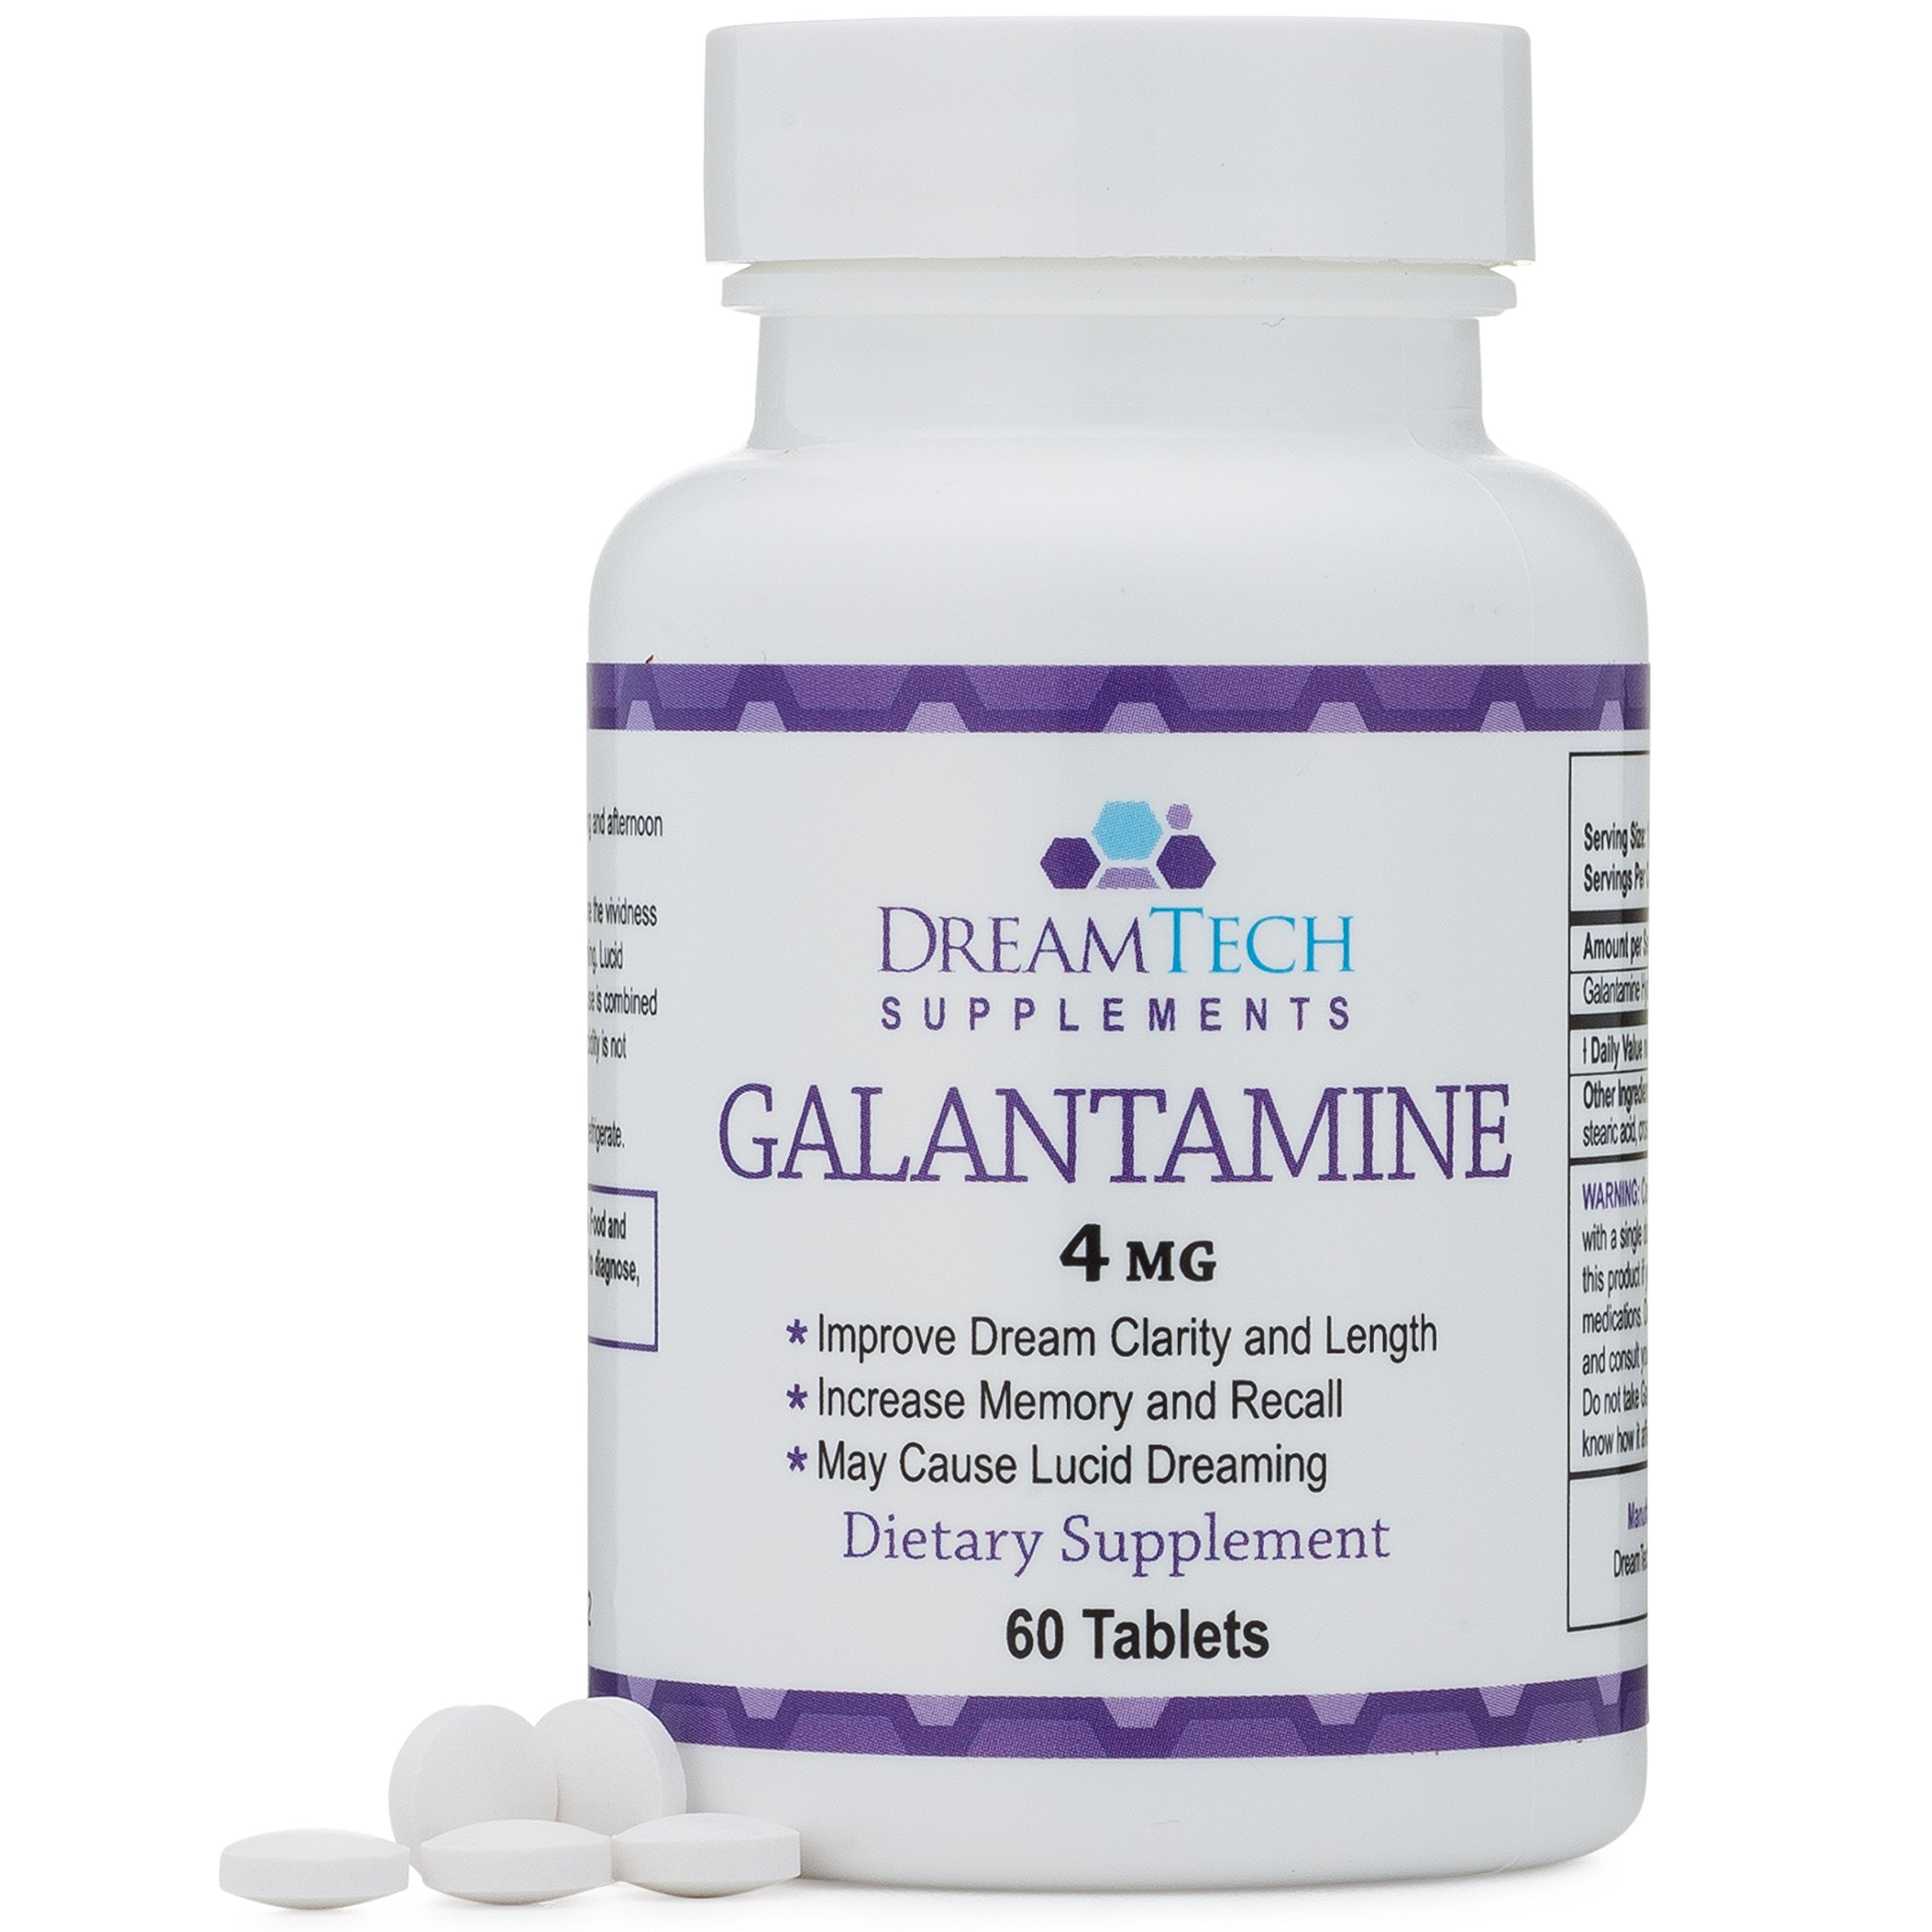 Galantamine - Lucid Dreaming & Nootropic Supplement - 4 Mg - 60 Tablets by Double Wood Supplements (Image #1)